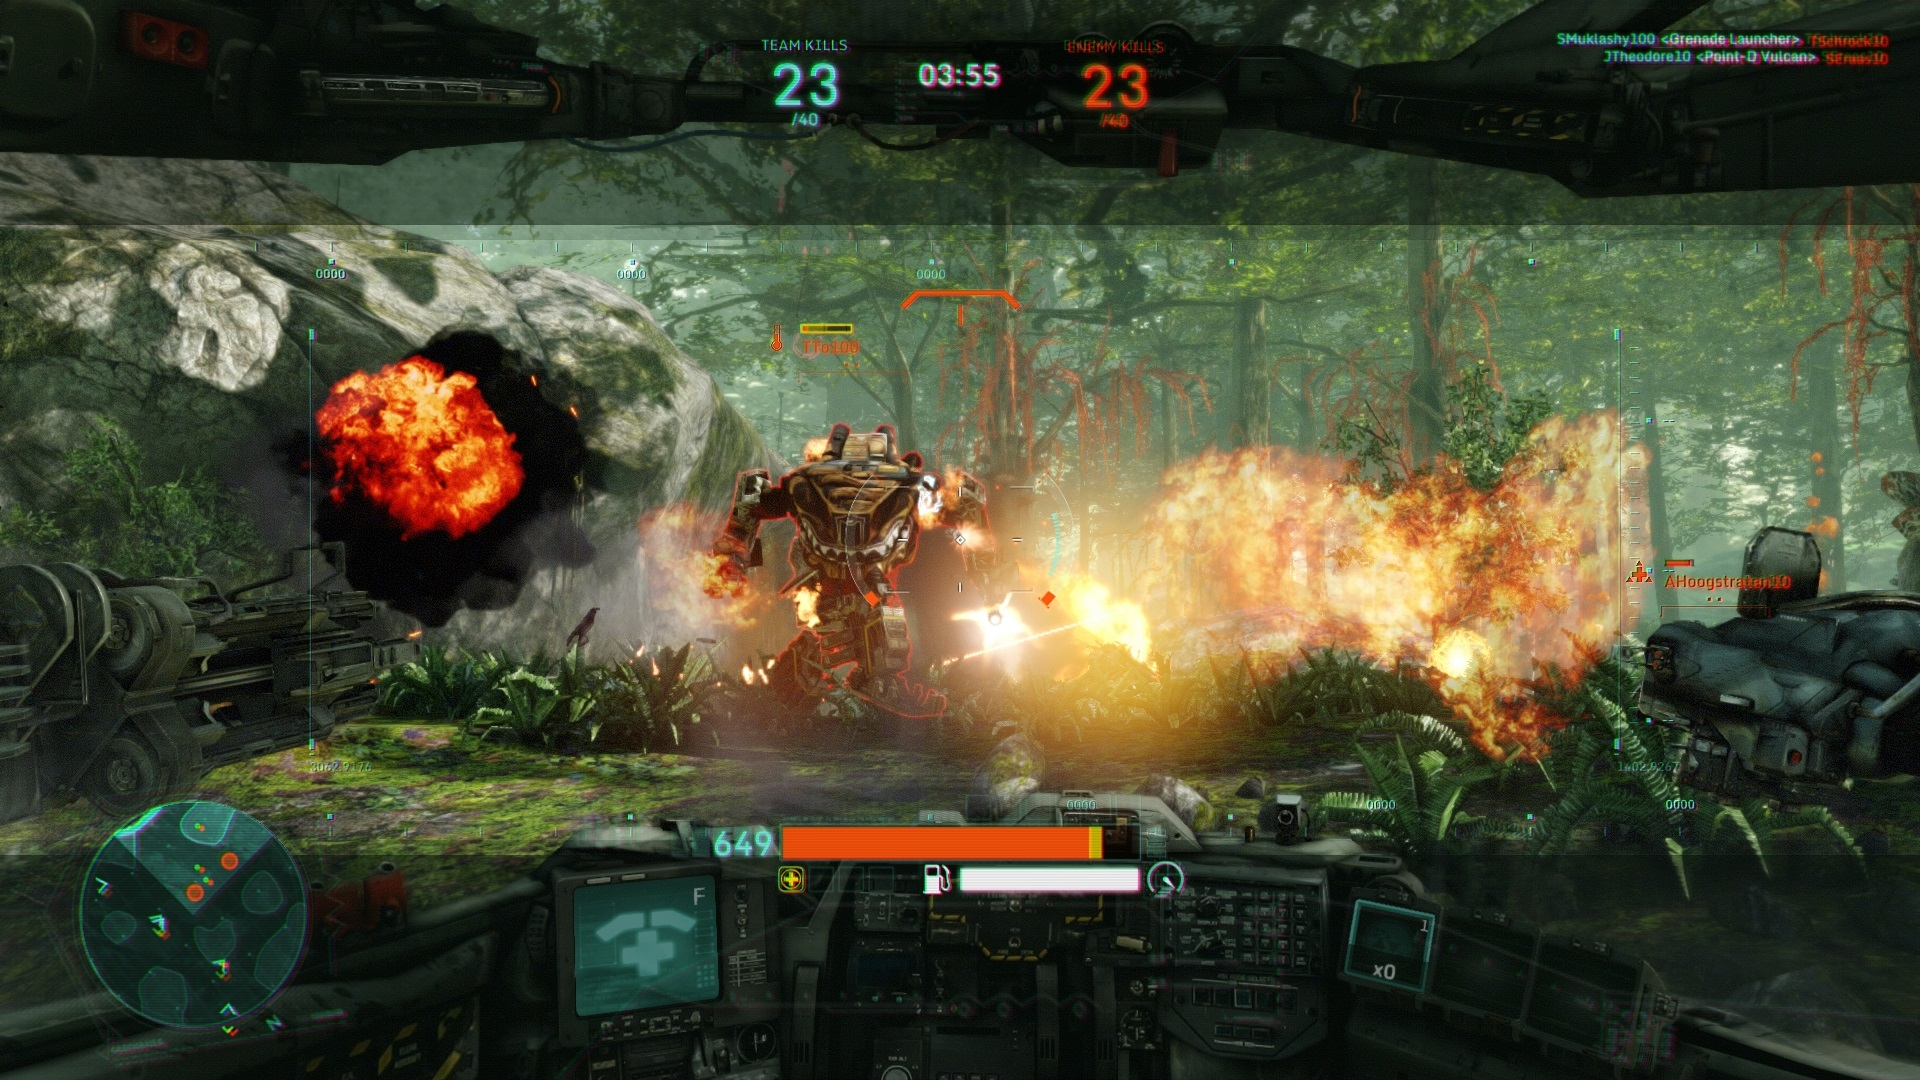 Steam Games For Ps4 : Mecha action game hawken comes to playstation and xbox